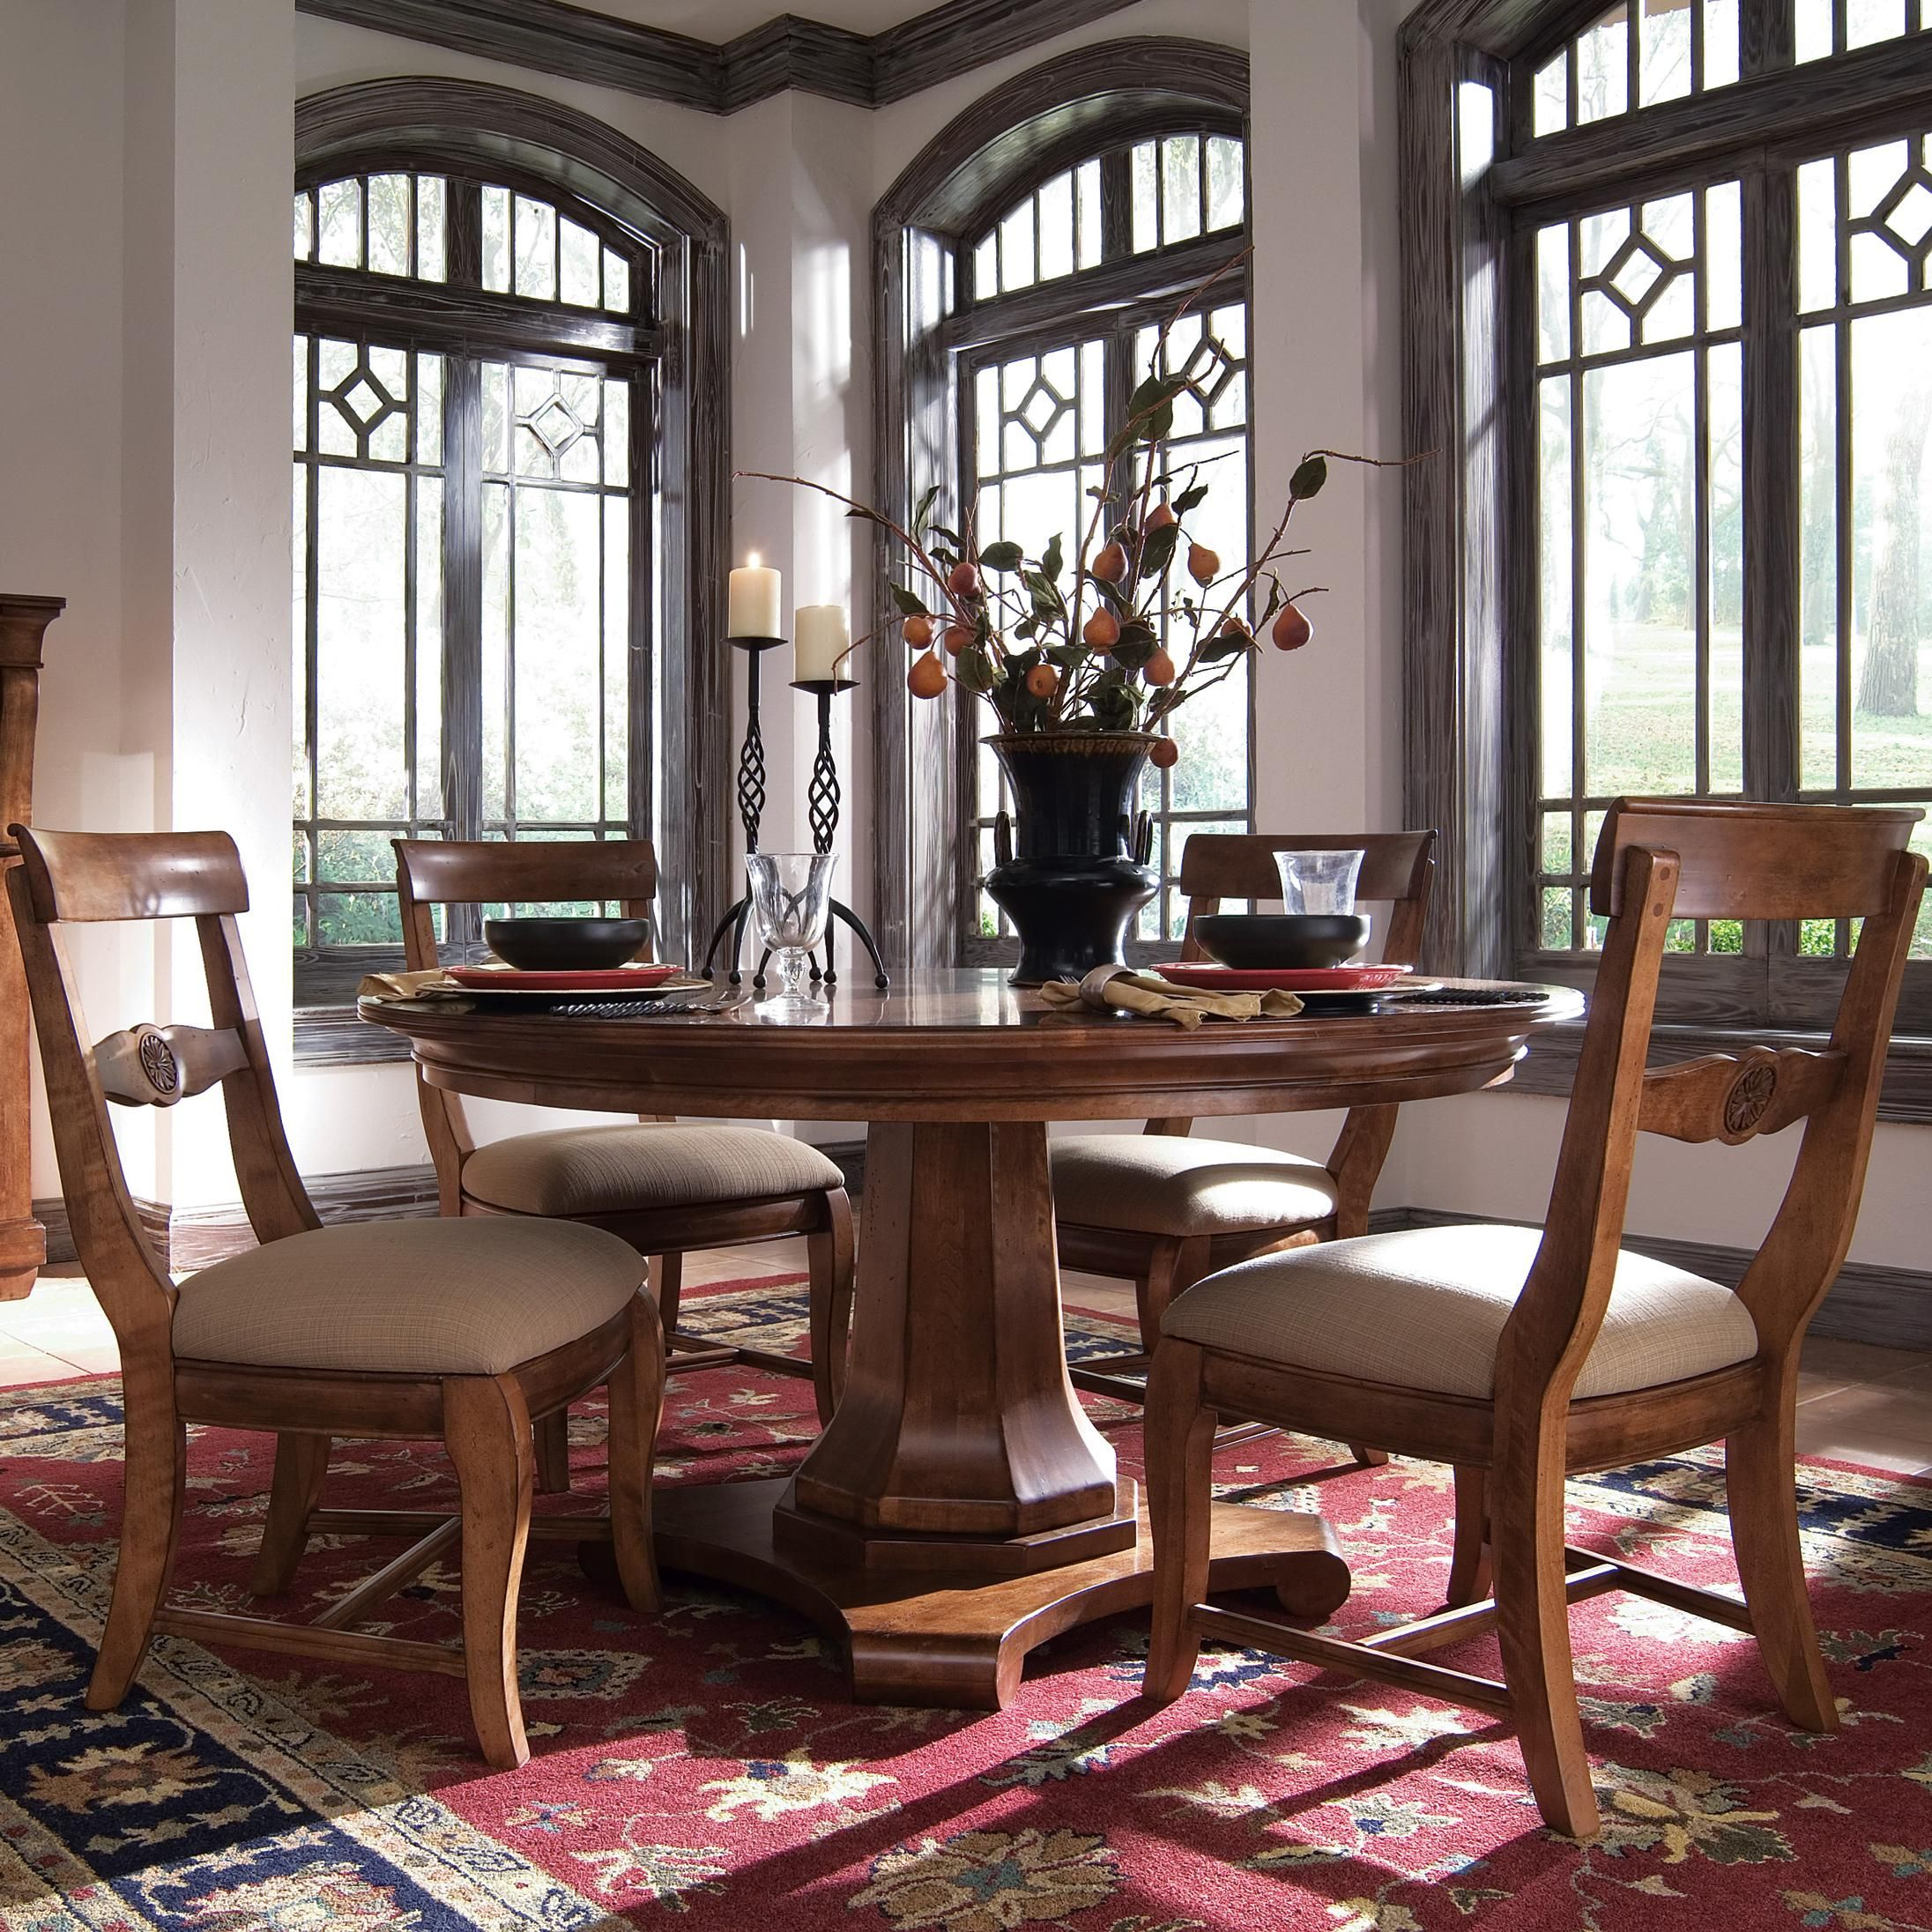 Tuscano 58 Round Dining Table By Kincaid Furniture Round Pedestal Dining Room Set Round Pedestal Dining Kincaid Furniture